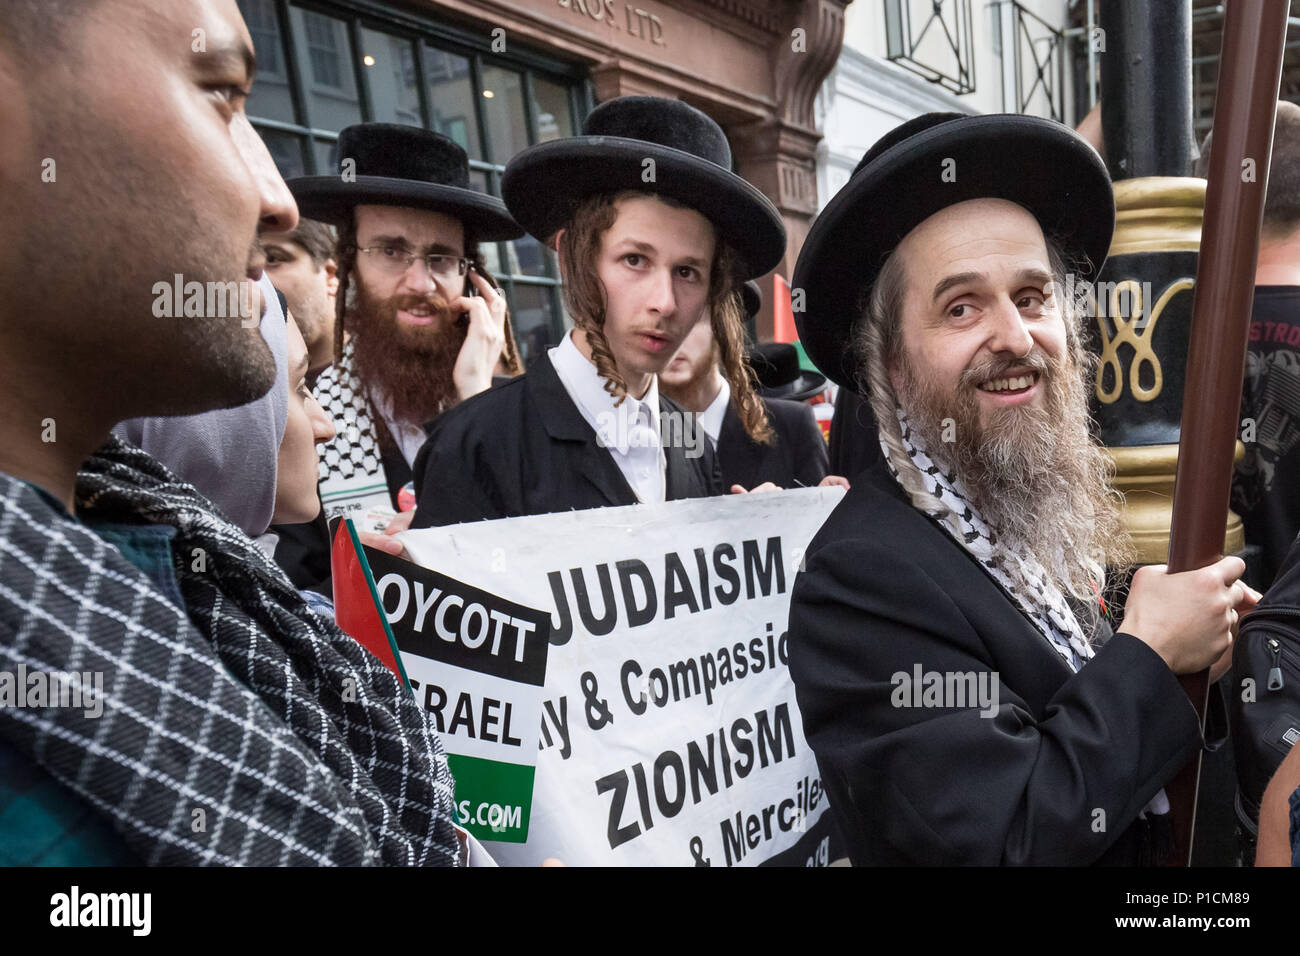 London, UK. 10th June, 2018. Pro-Palestinian Al Quds Day march through central London organised by the Islamic Human Rights Commission. An international event which began in Iran 1979. Credit: Guy Corbishley/Alamy Live News - Stock Image